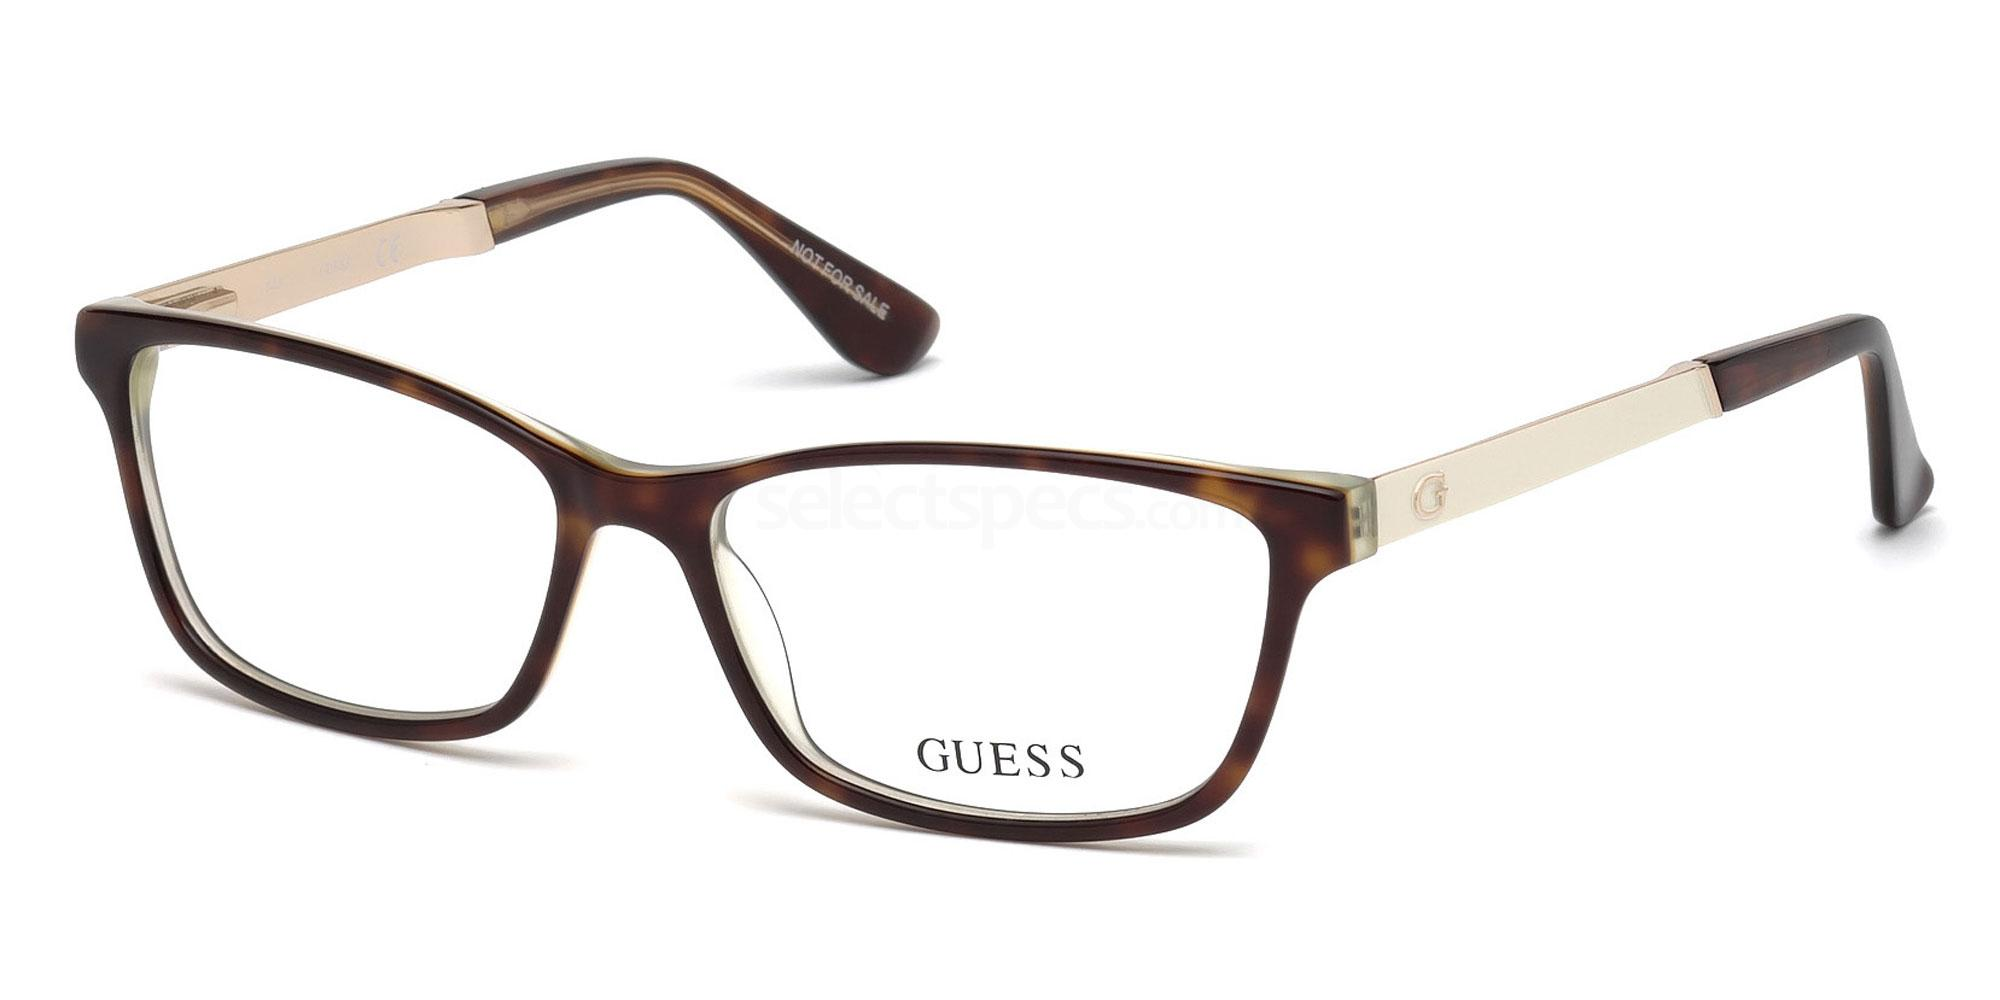 056 GU2628 Glasses, Guess